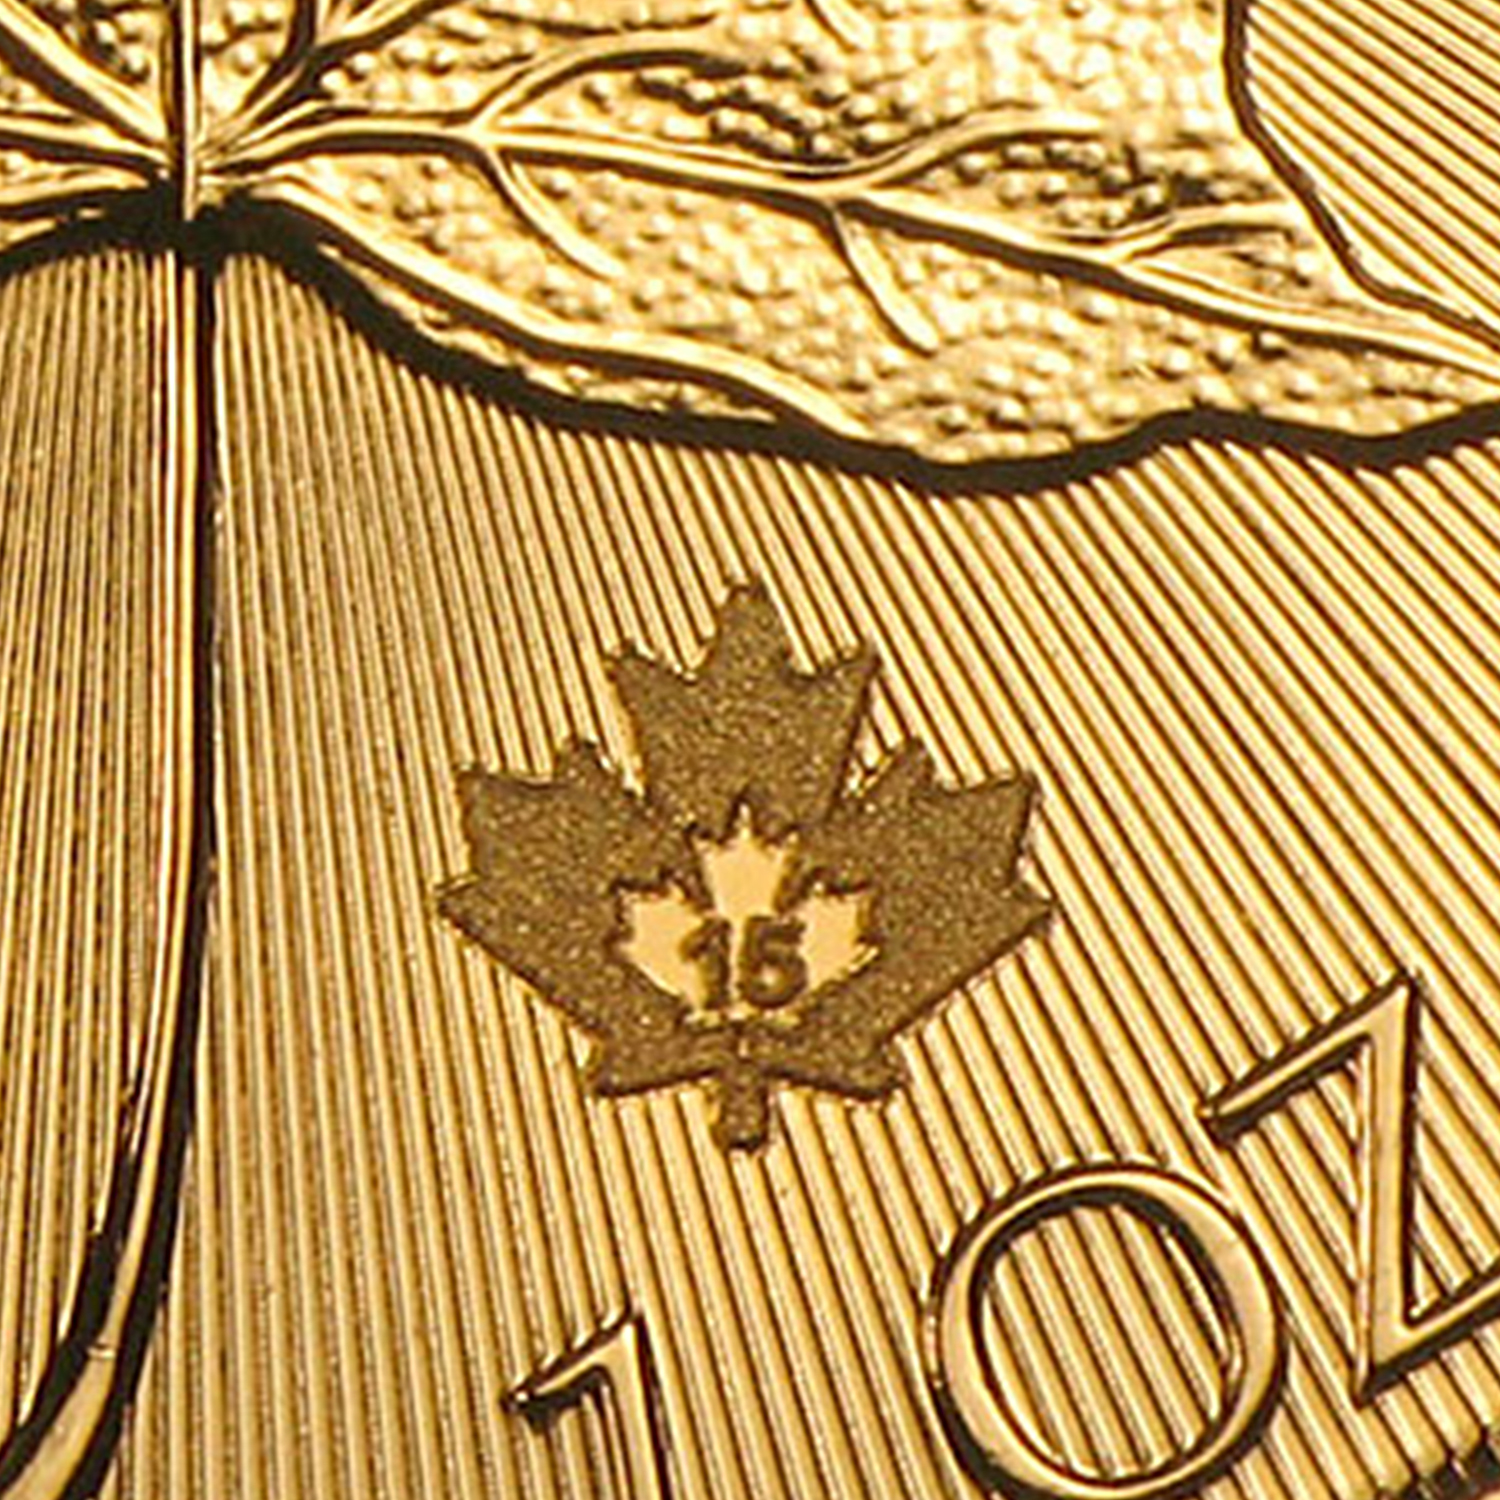 2015 Canada 1 oz Gold Canadian Maple Leaf (In Assay)